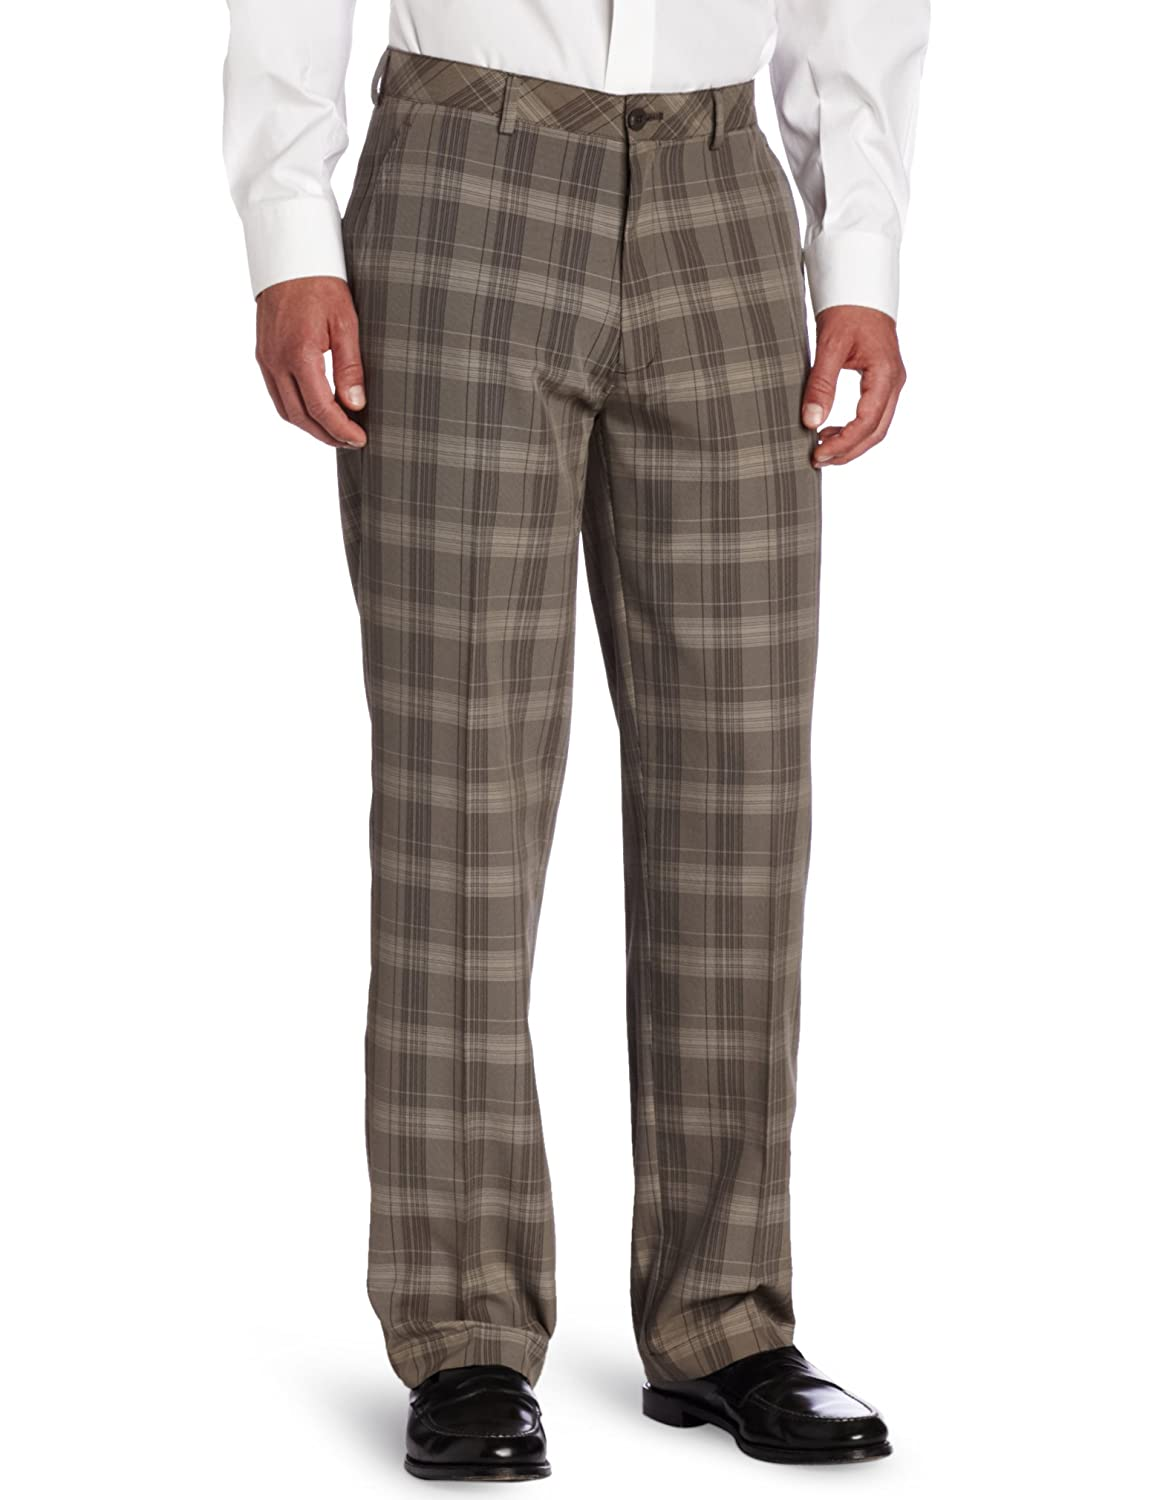 Men's Vintage Pants, Trousers, Jeans, Overalls Haggar Glen Plaid Straight Fit Flat Front Pant $49.19 AT vintagedancer.com